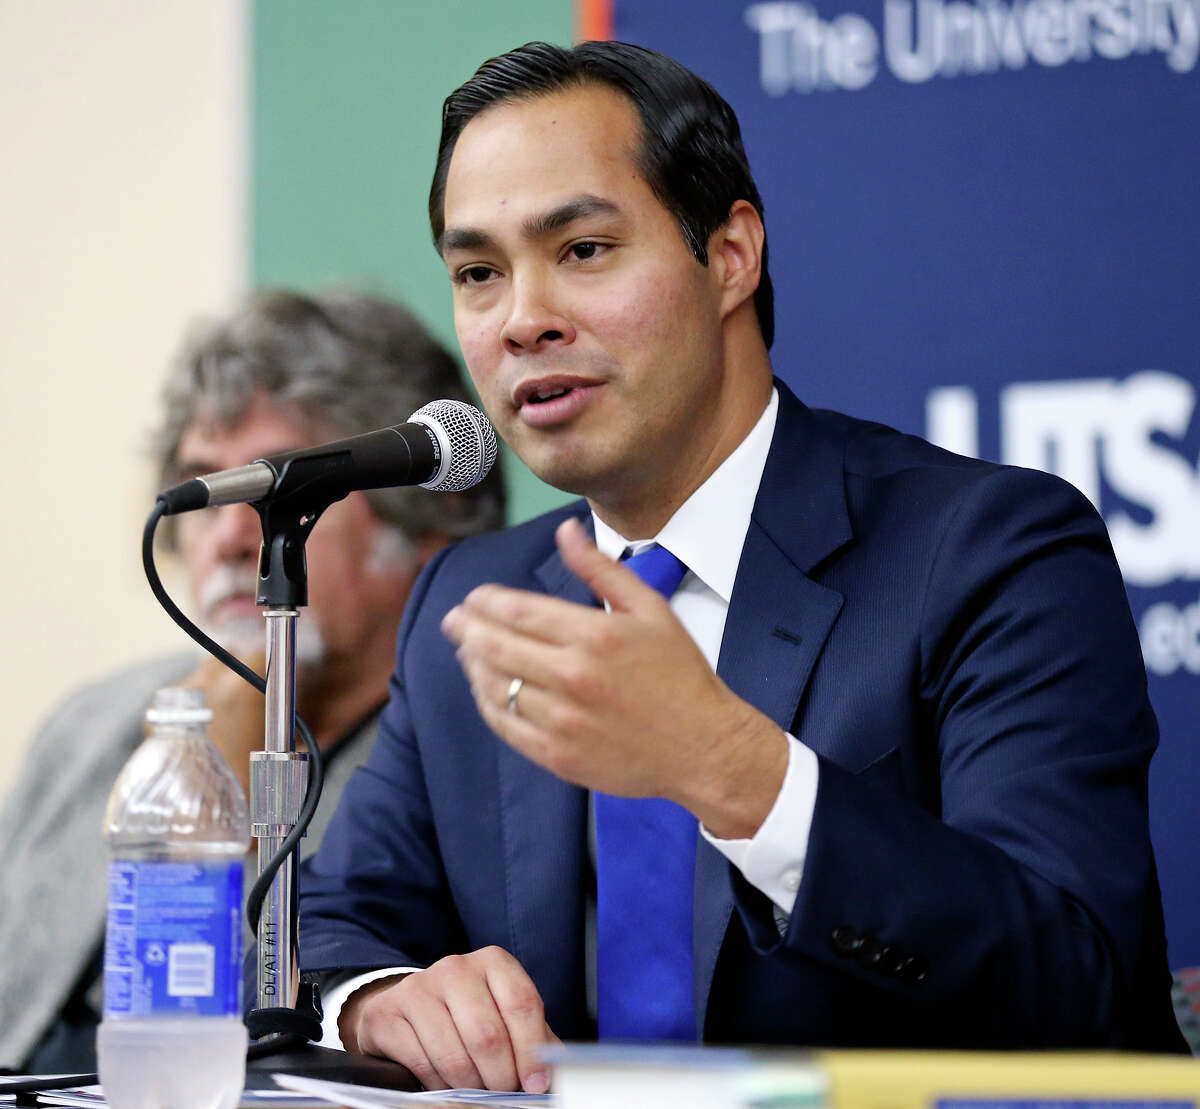 Mayor Julian Castro speaks during the San Antonio Express-News and UTSA Town Hall Forum Future of Alamo Plaza Thursday Sept. 19, 2013 at the UTSA Downtown Campus.